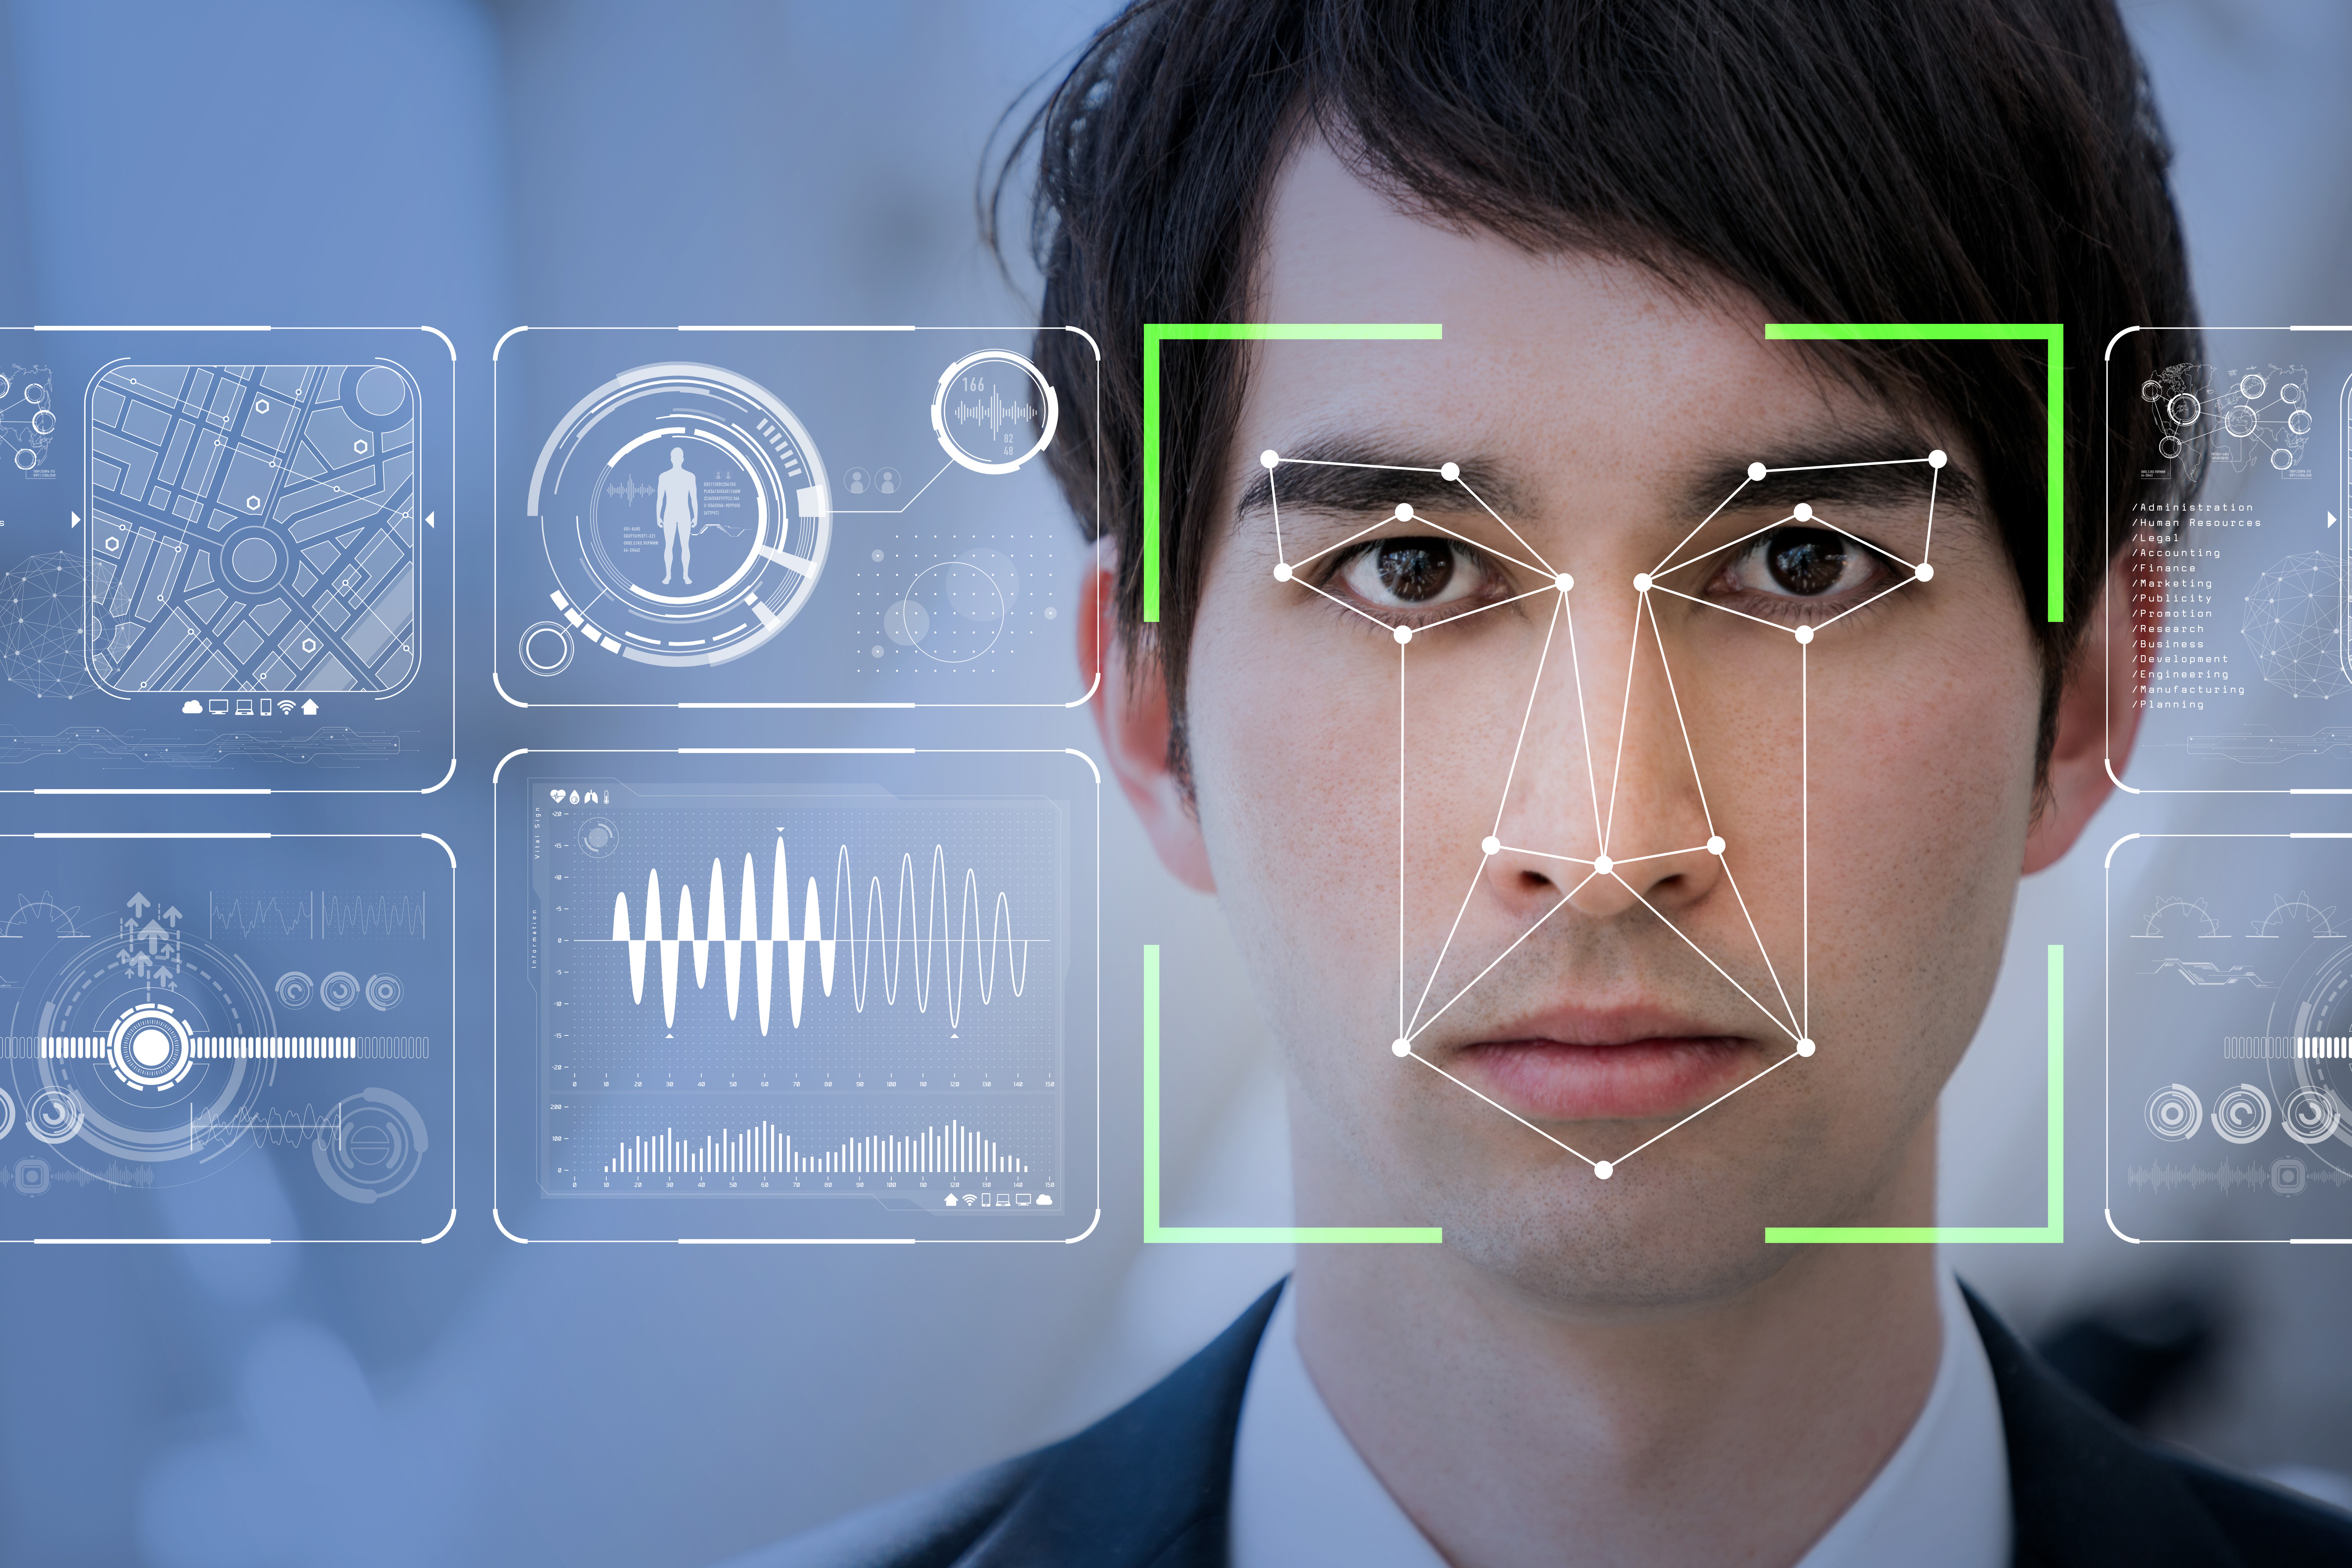 Limits of photographs in facial recognition